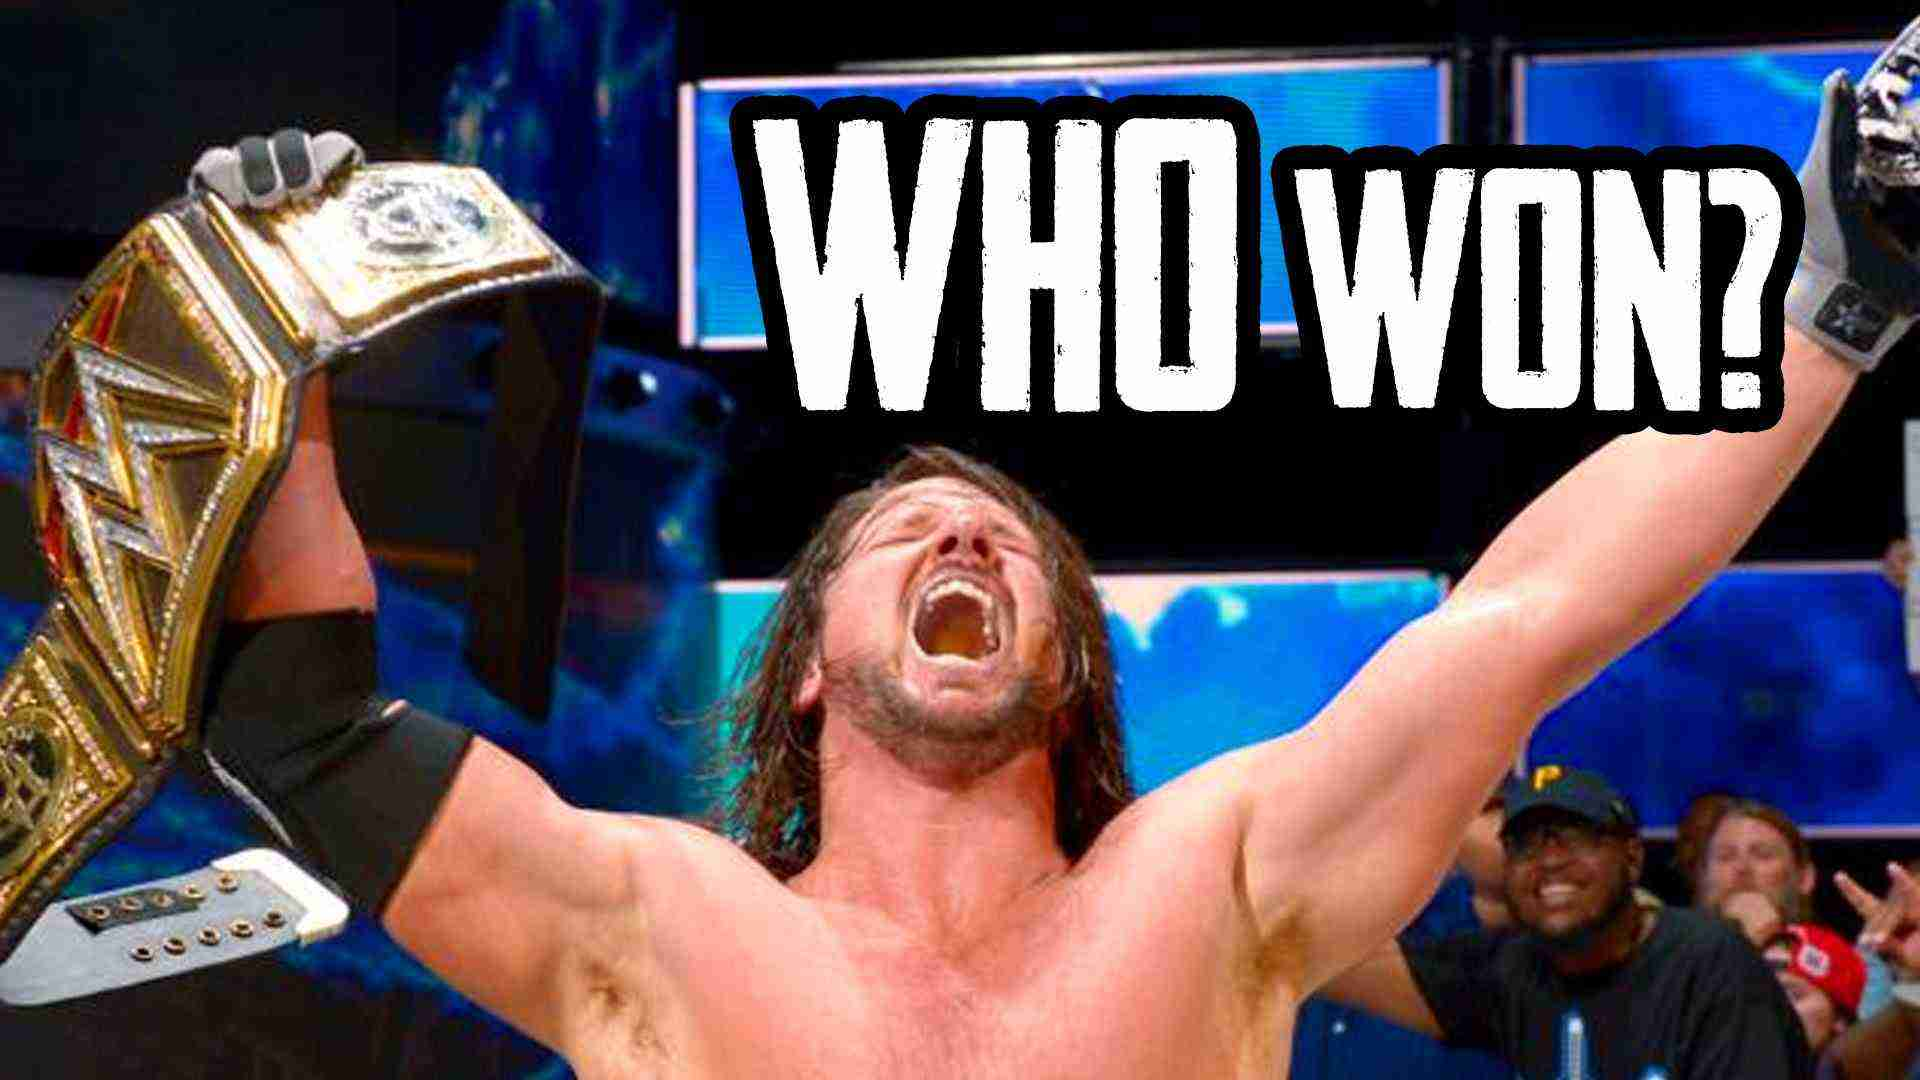 WWE BACKLASH 2016 RESULTS! (WWE Wrestling News w/ Steve and Larson)